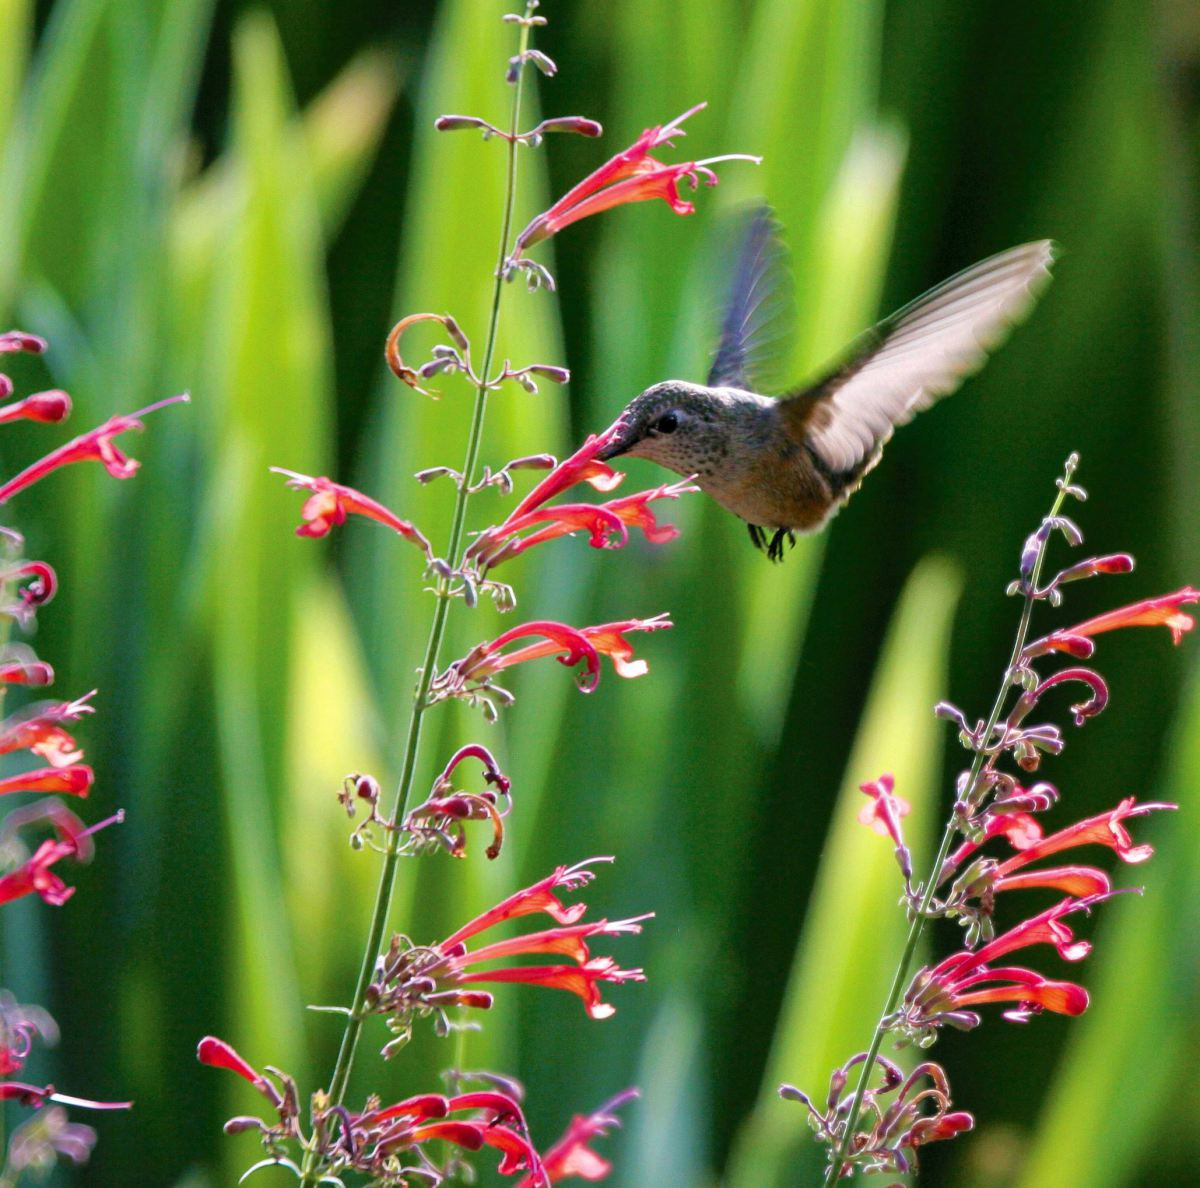 Wshg Net Gardening To Attract Hummingbirds And Butterflies Featured The Garden July 15